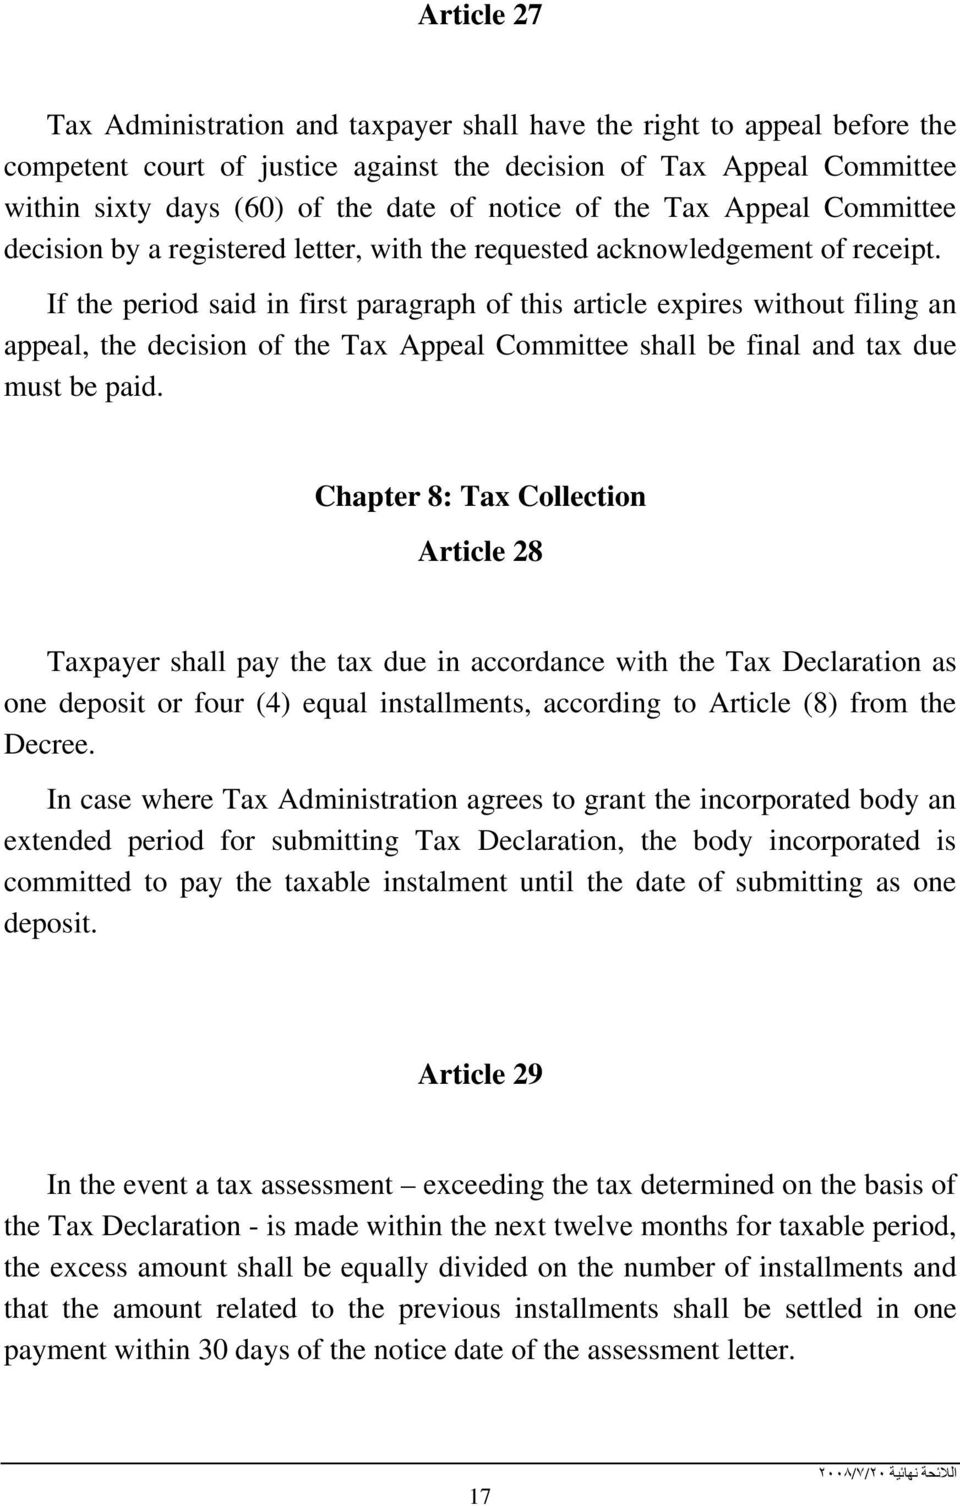 If the period said in first paragraph of this article expires without filing an appeal, the decision of the Tax Appeal Committee shall be final and tax due must be paid.